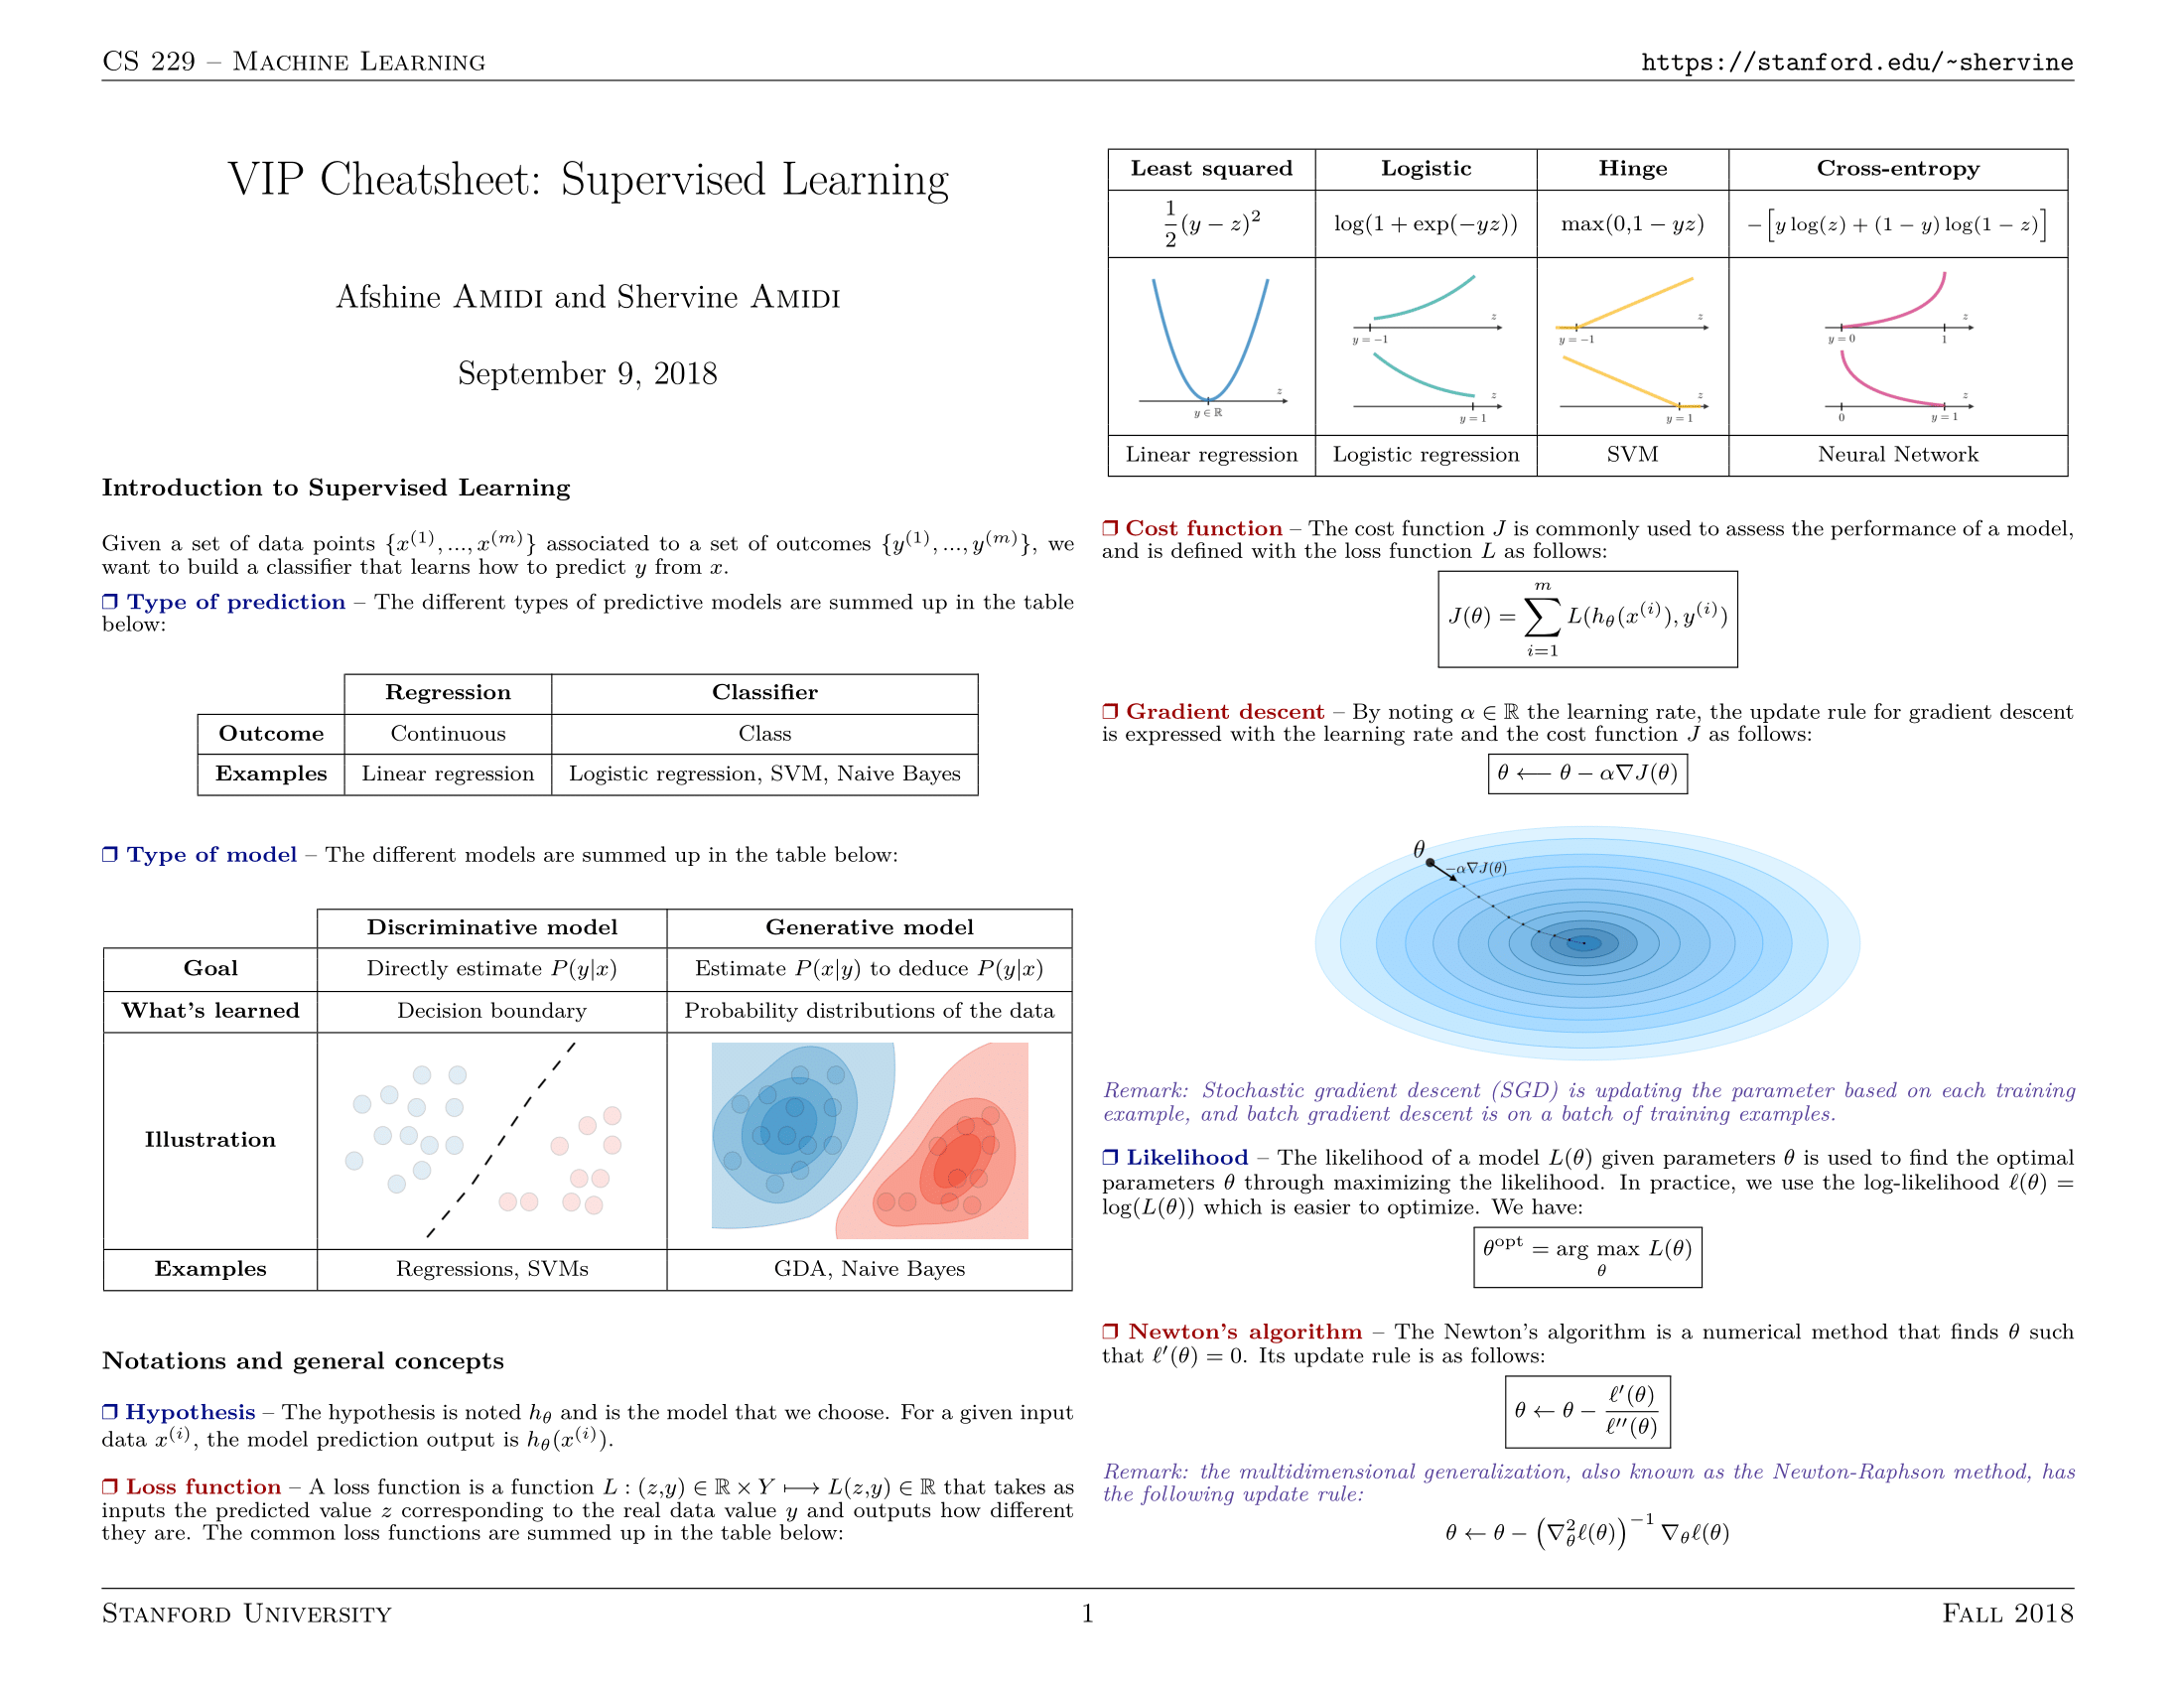 VIP Cheatsheets - Supervised Learning by Stanford's CS 229 Students